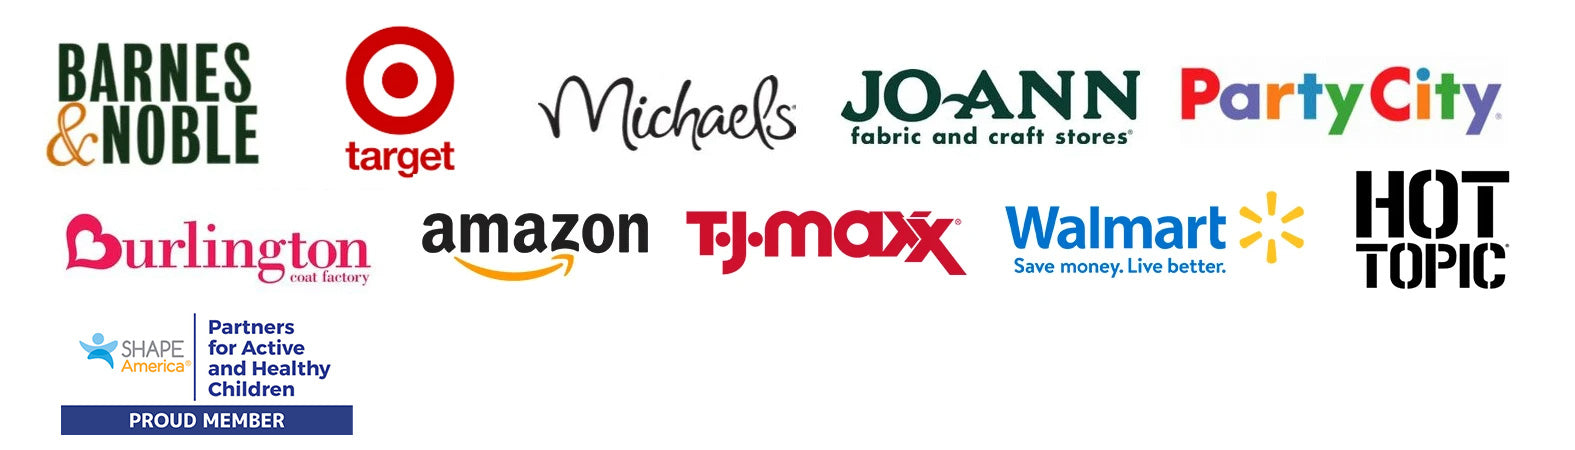 Featured in these retail locations, Barns & Noble, Amazon, Michaels, Joann Fabric and Craft stores, Party City, Burlington